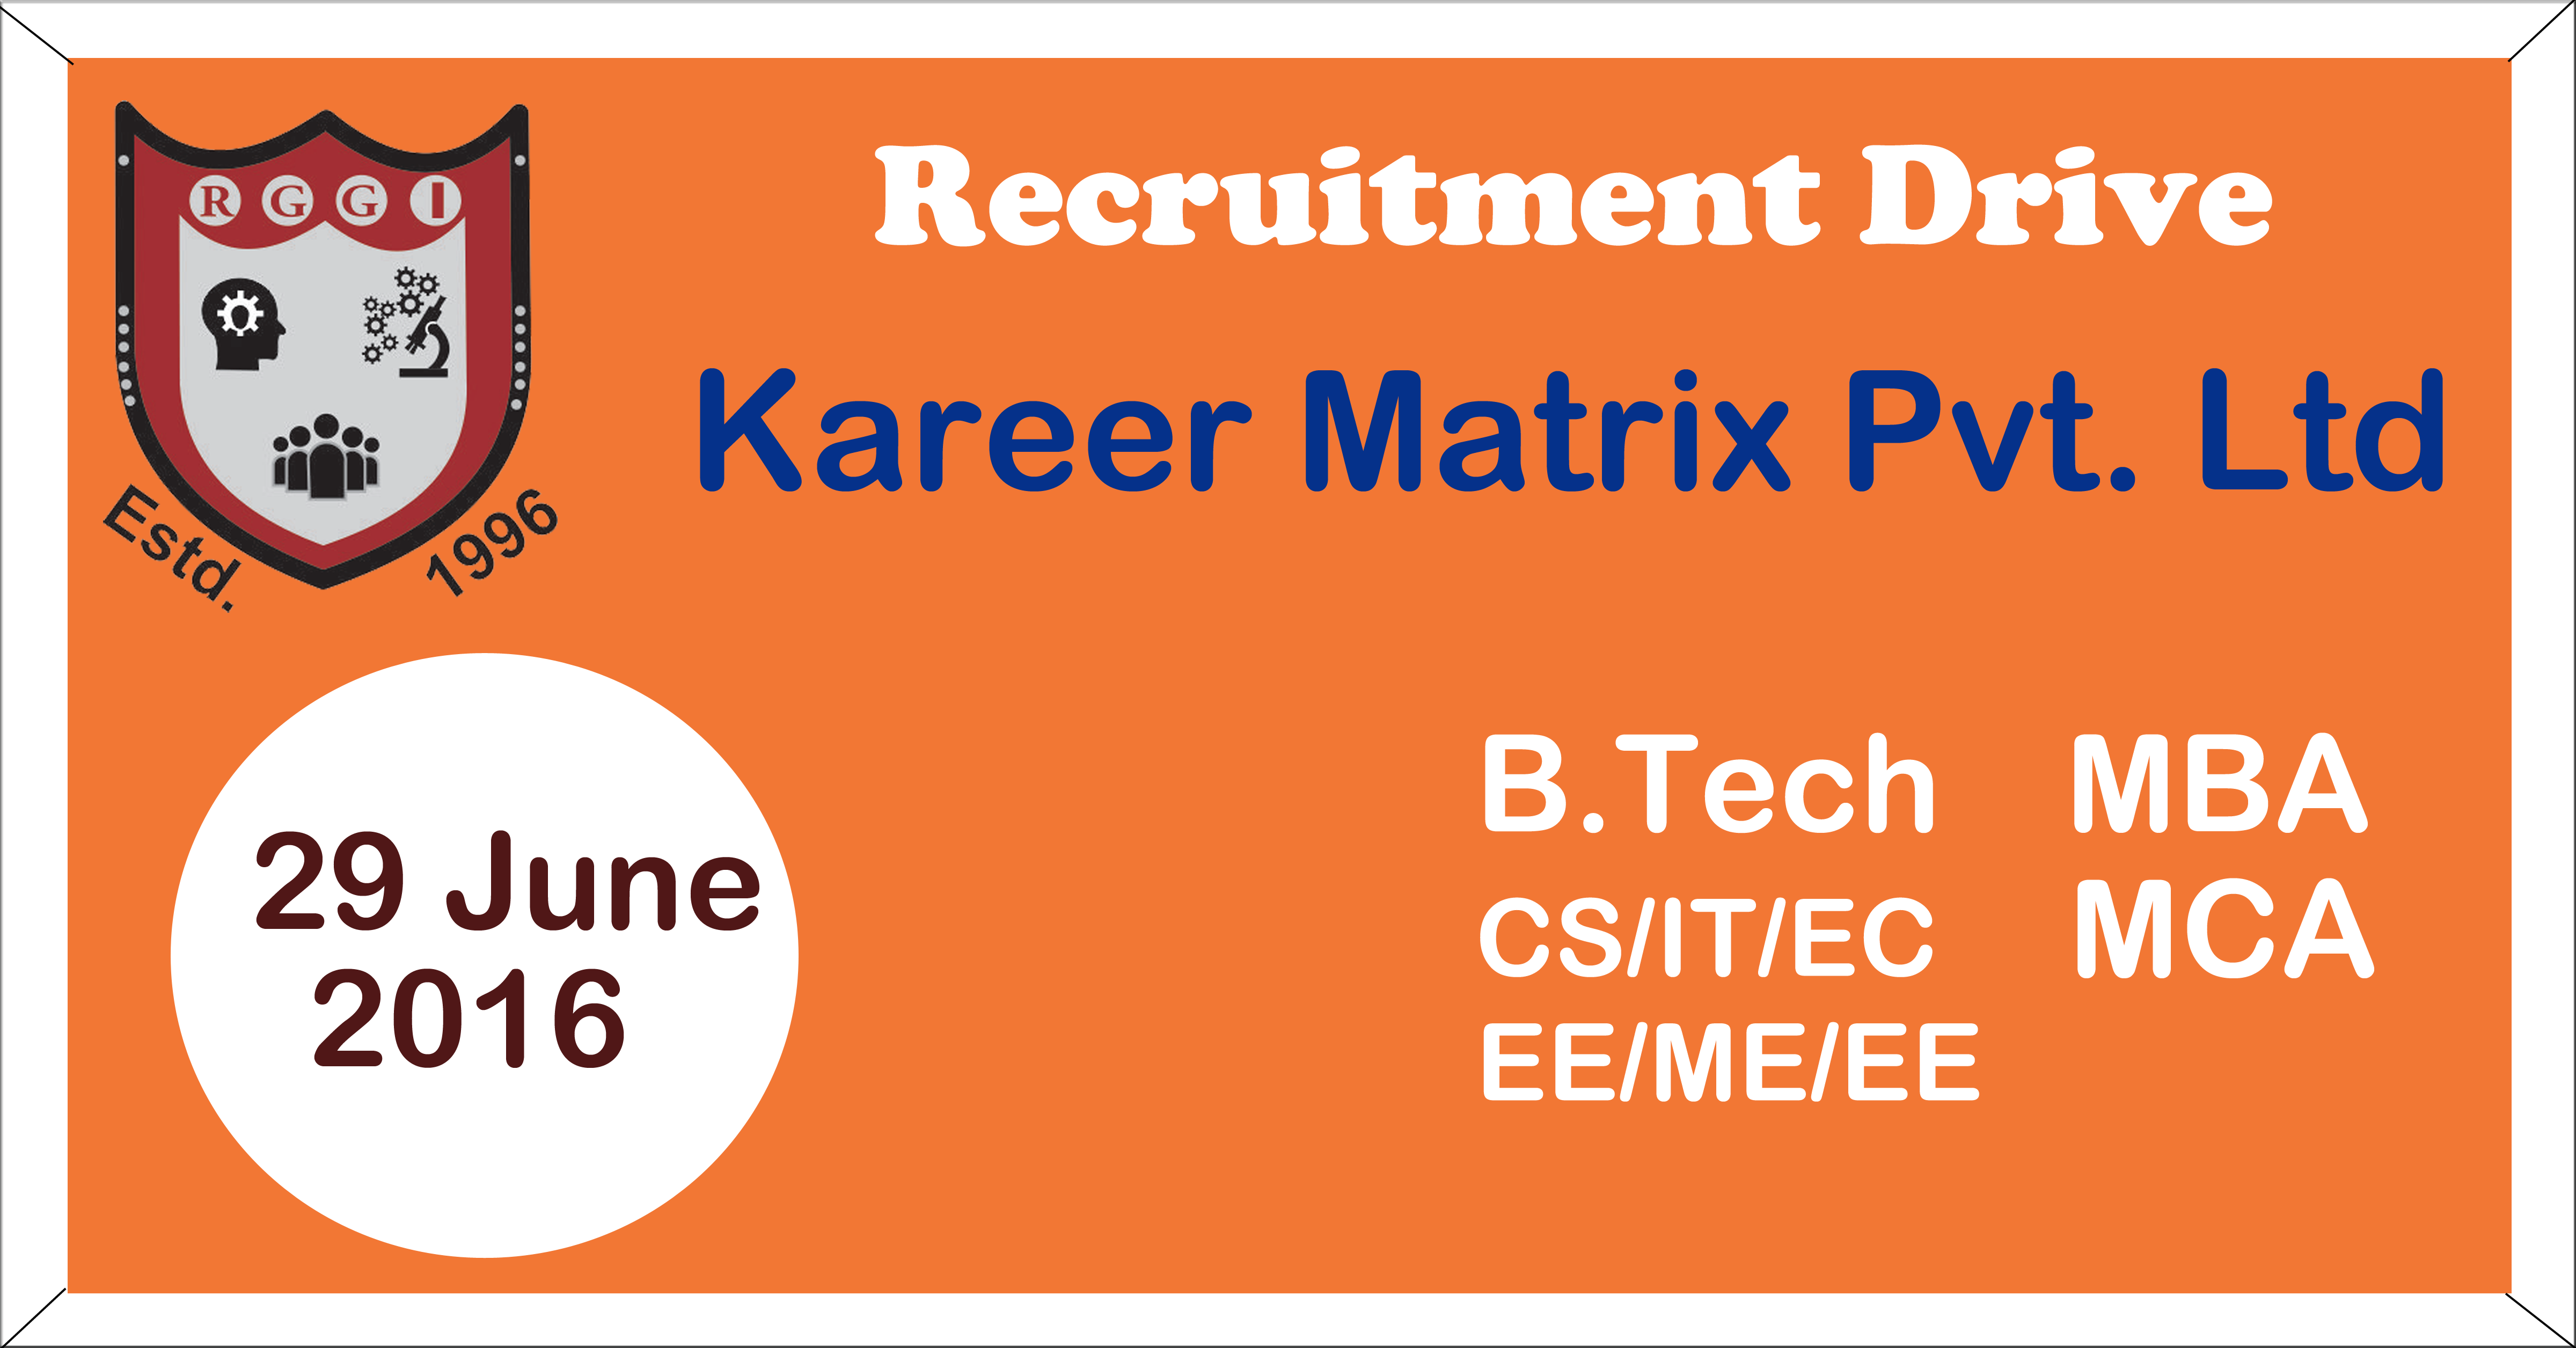 Kareer Matrix Pvt. Ltd. Recruitment